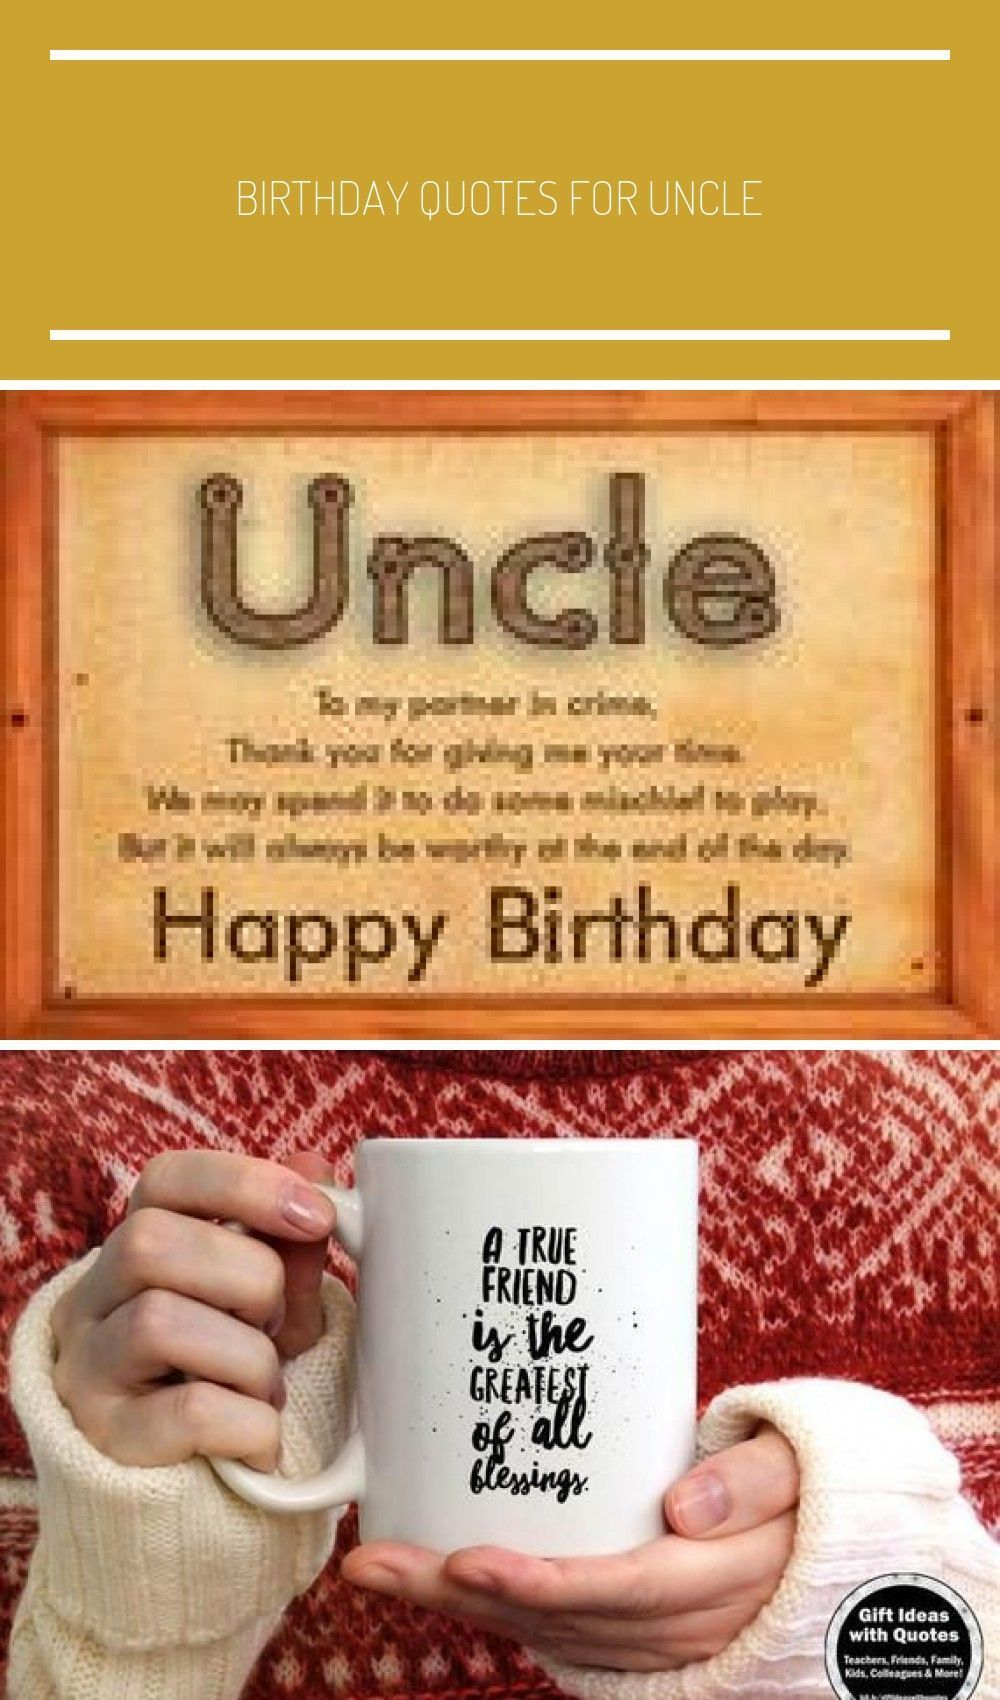 Birthday Quotes For Uncle From Niece Birthday Birthdayquotesforuncle Niece Birthd Uncle Birthday Quotes Nephew Birthday Quotes Niece Quotes